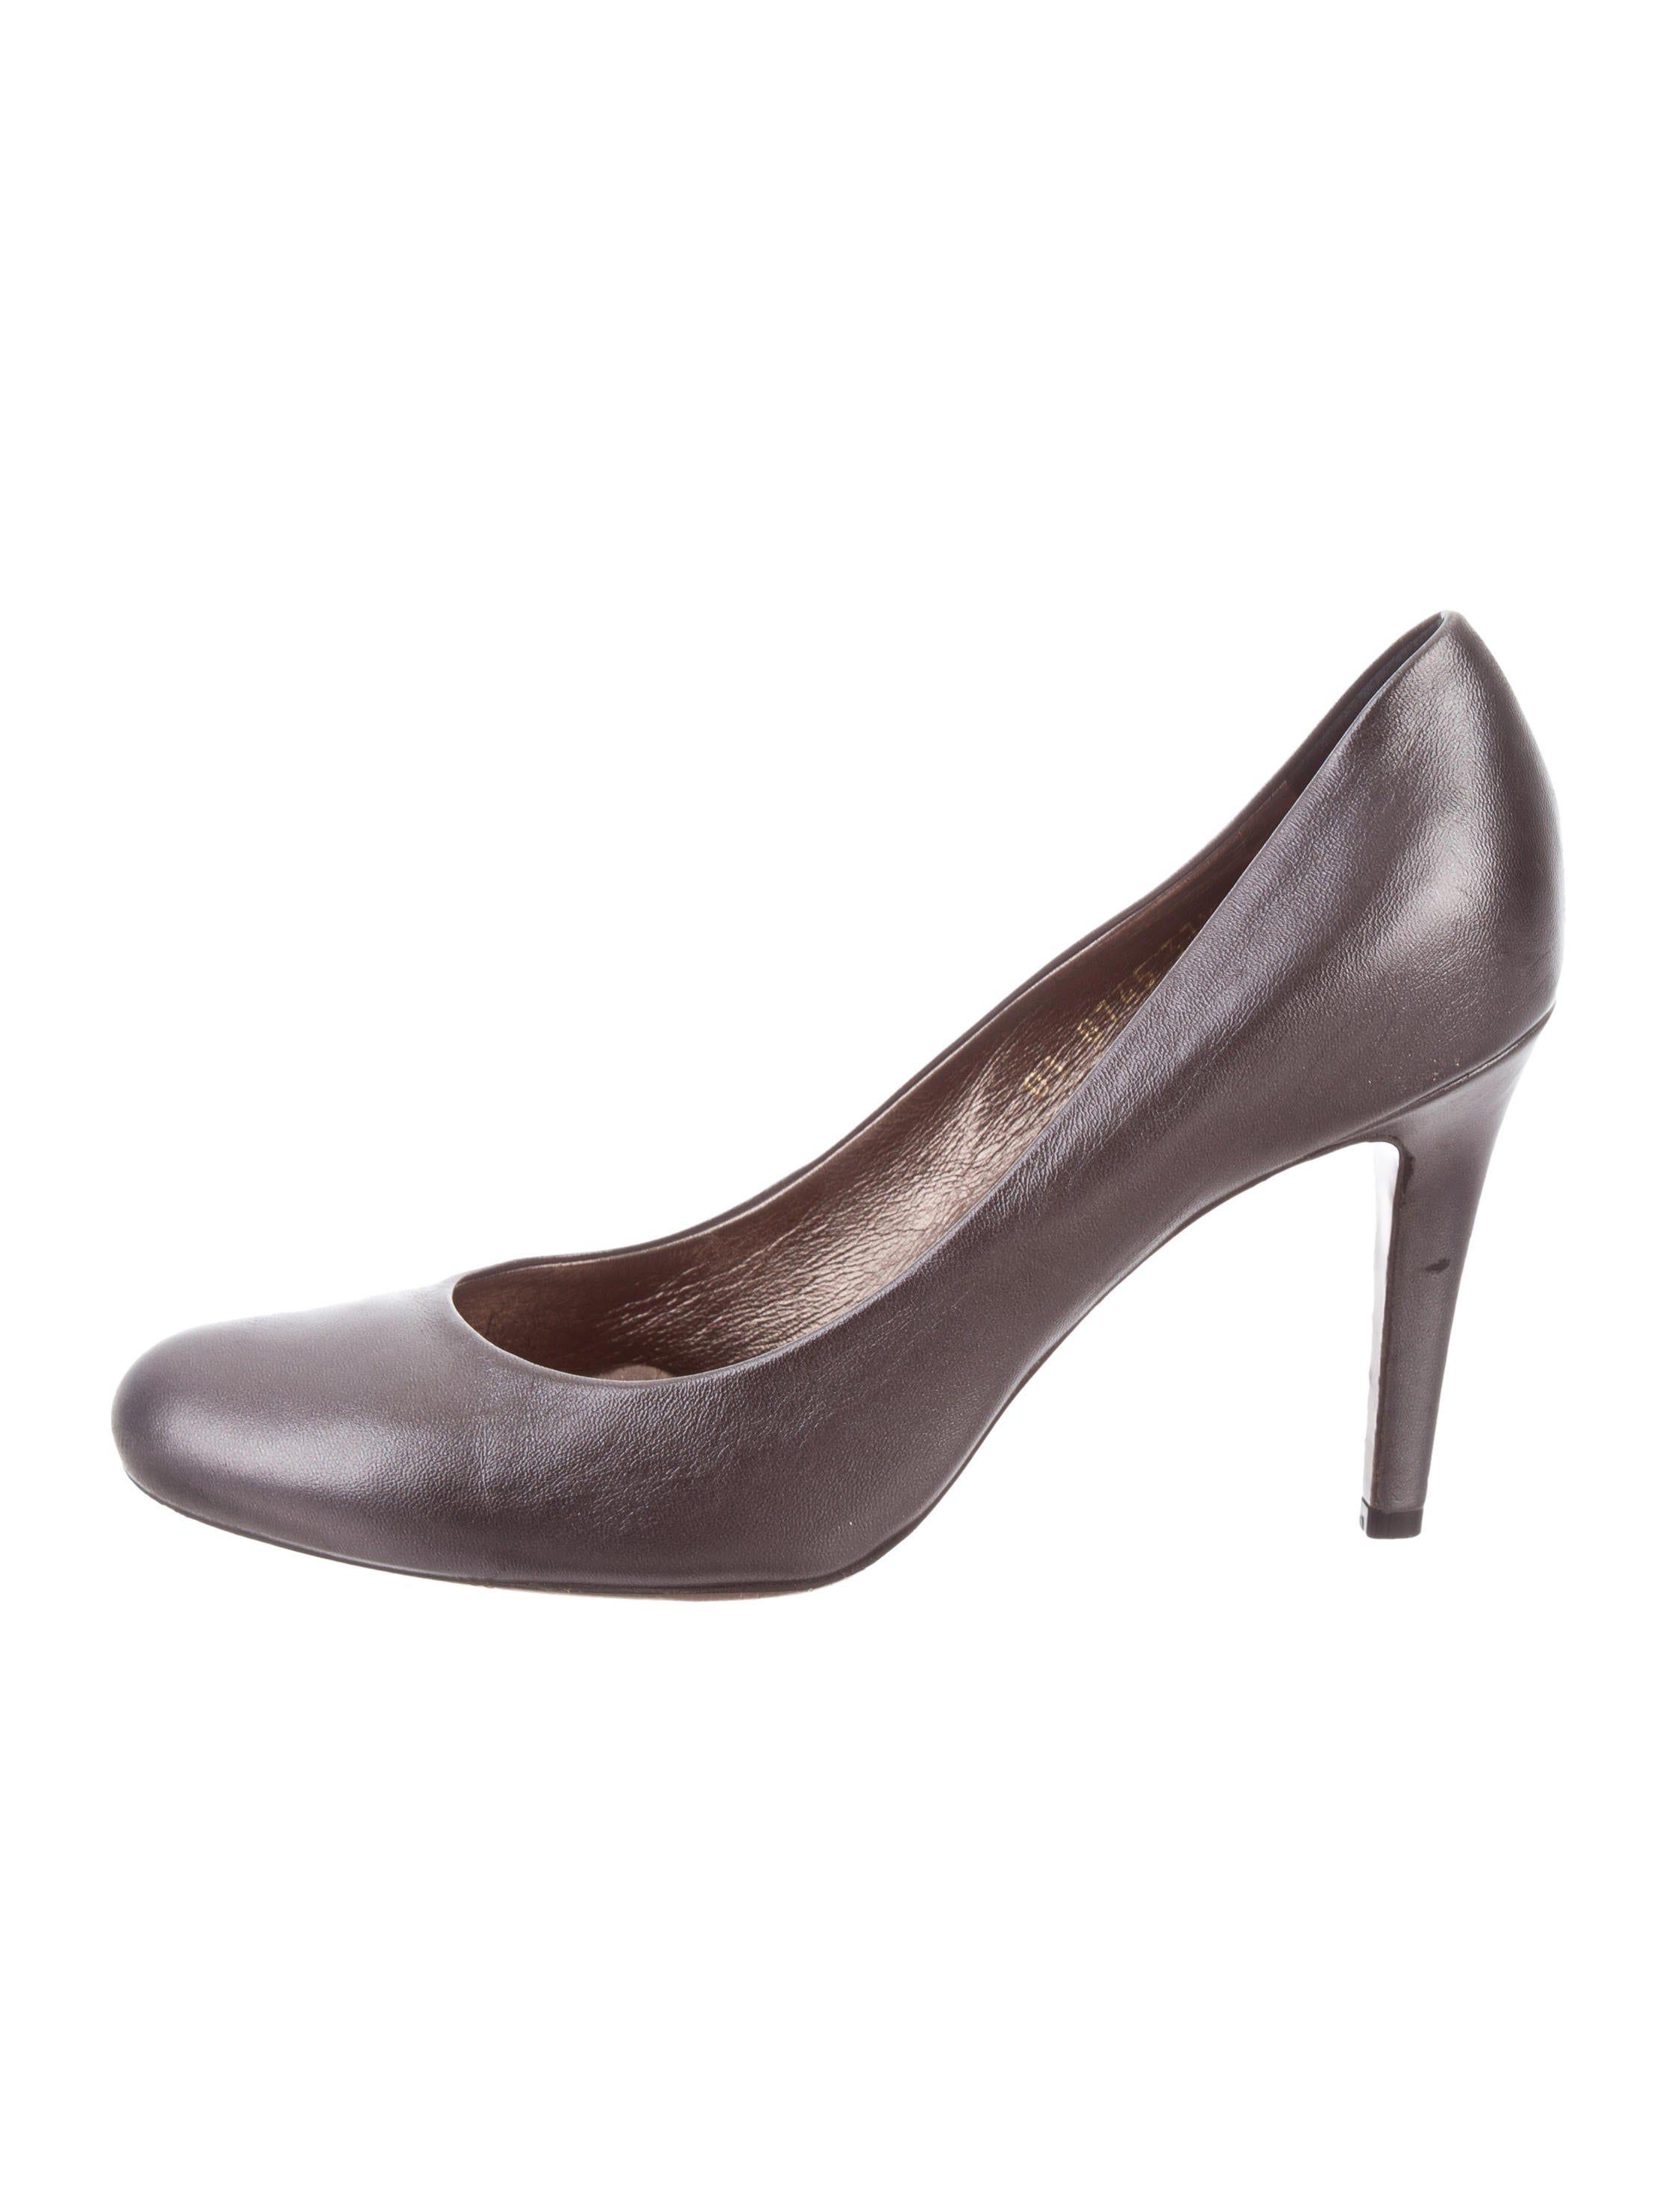 discount amazon Walter Steiger Metallic Leather Pumps sneakernews cheap price fast delivery cheap online outlet with credit card womKT4roo